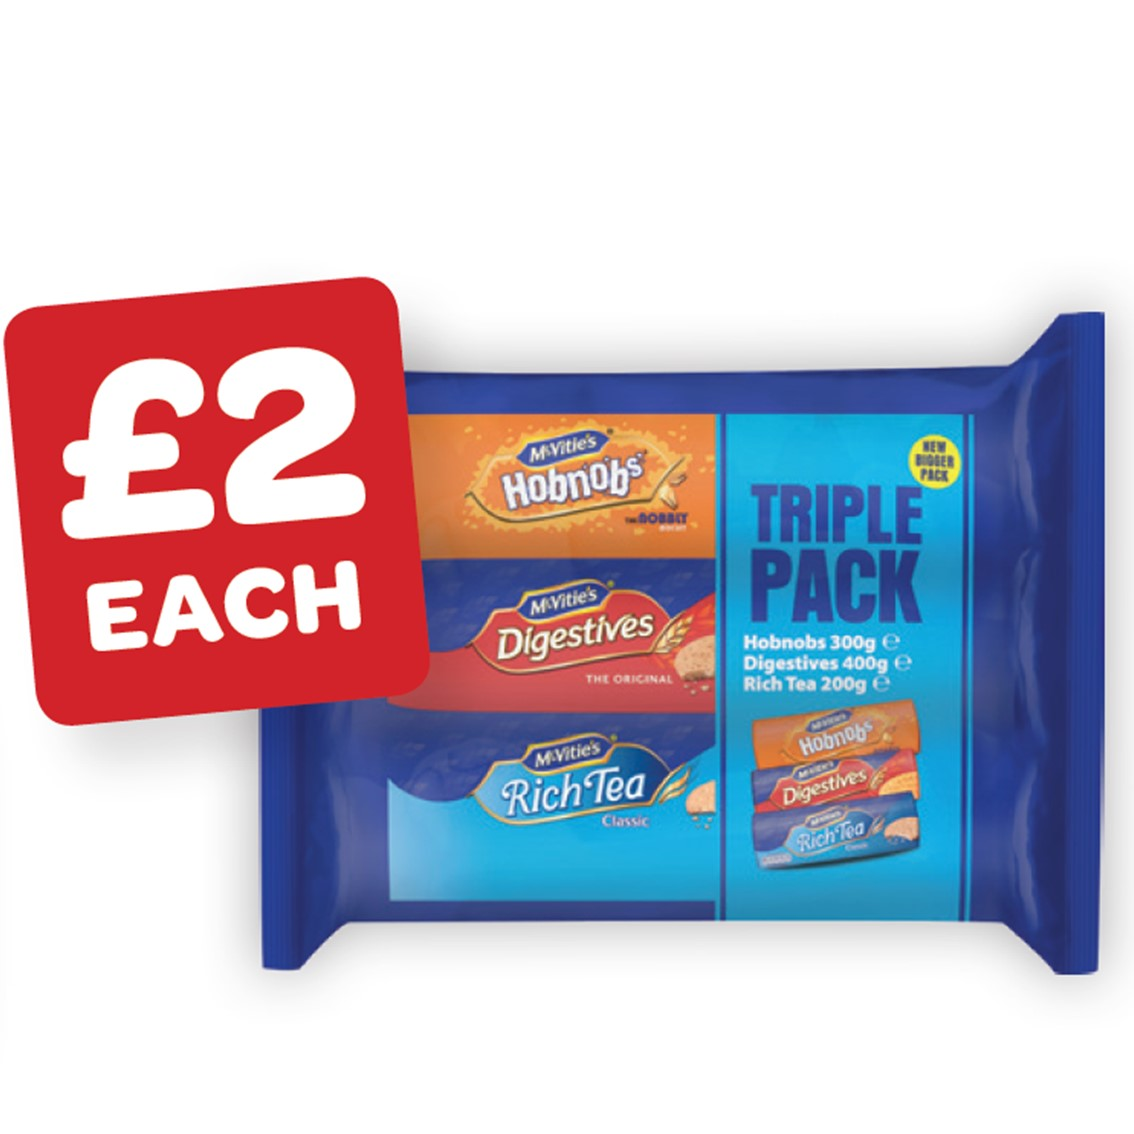 McVitie's Rich Tea / Digestives / Hob Nobs 3 Pack